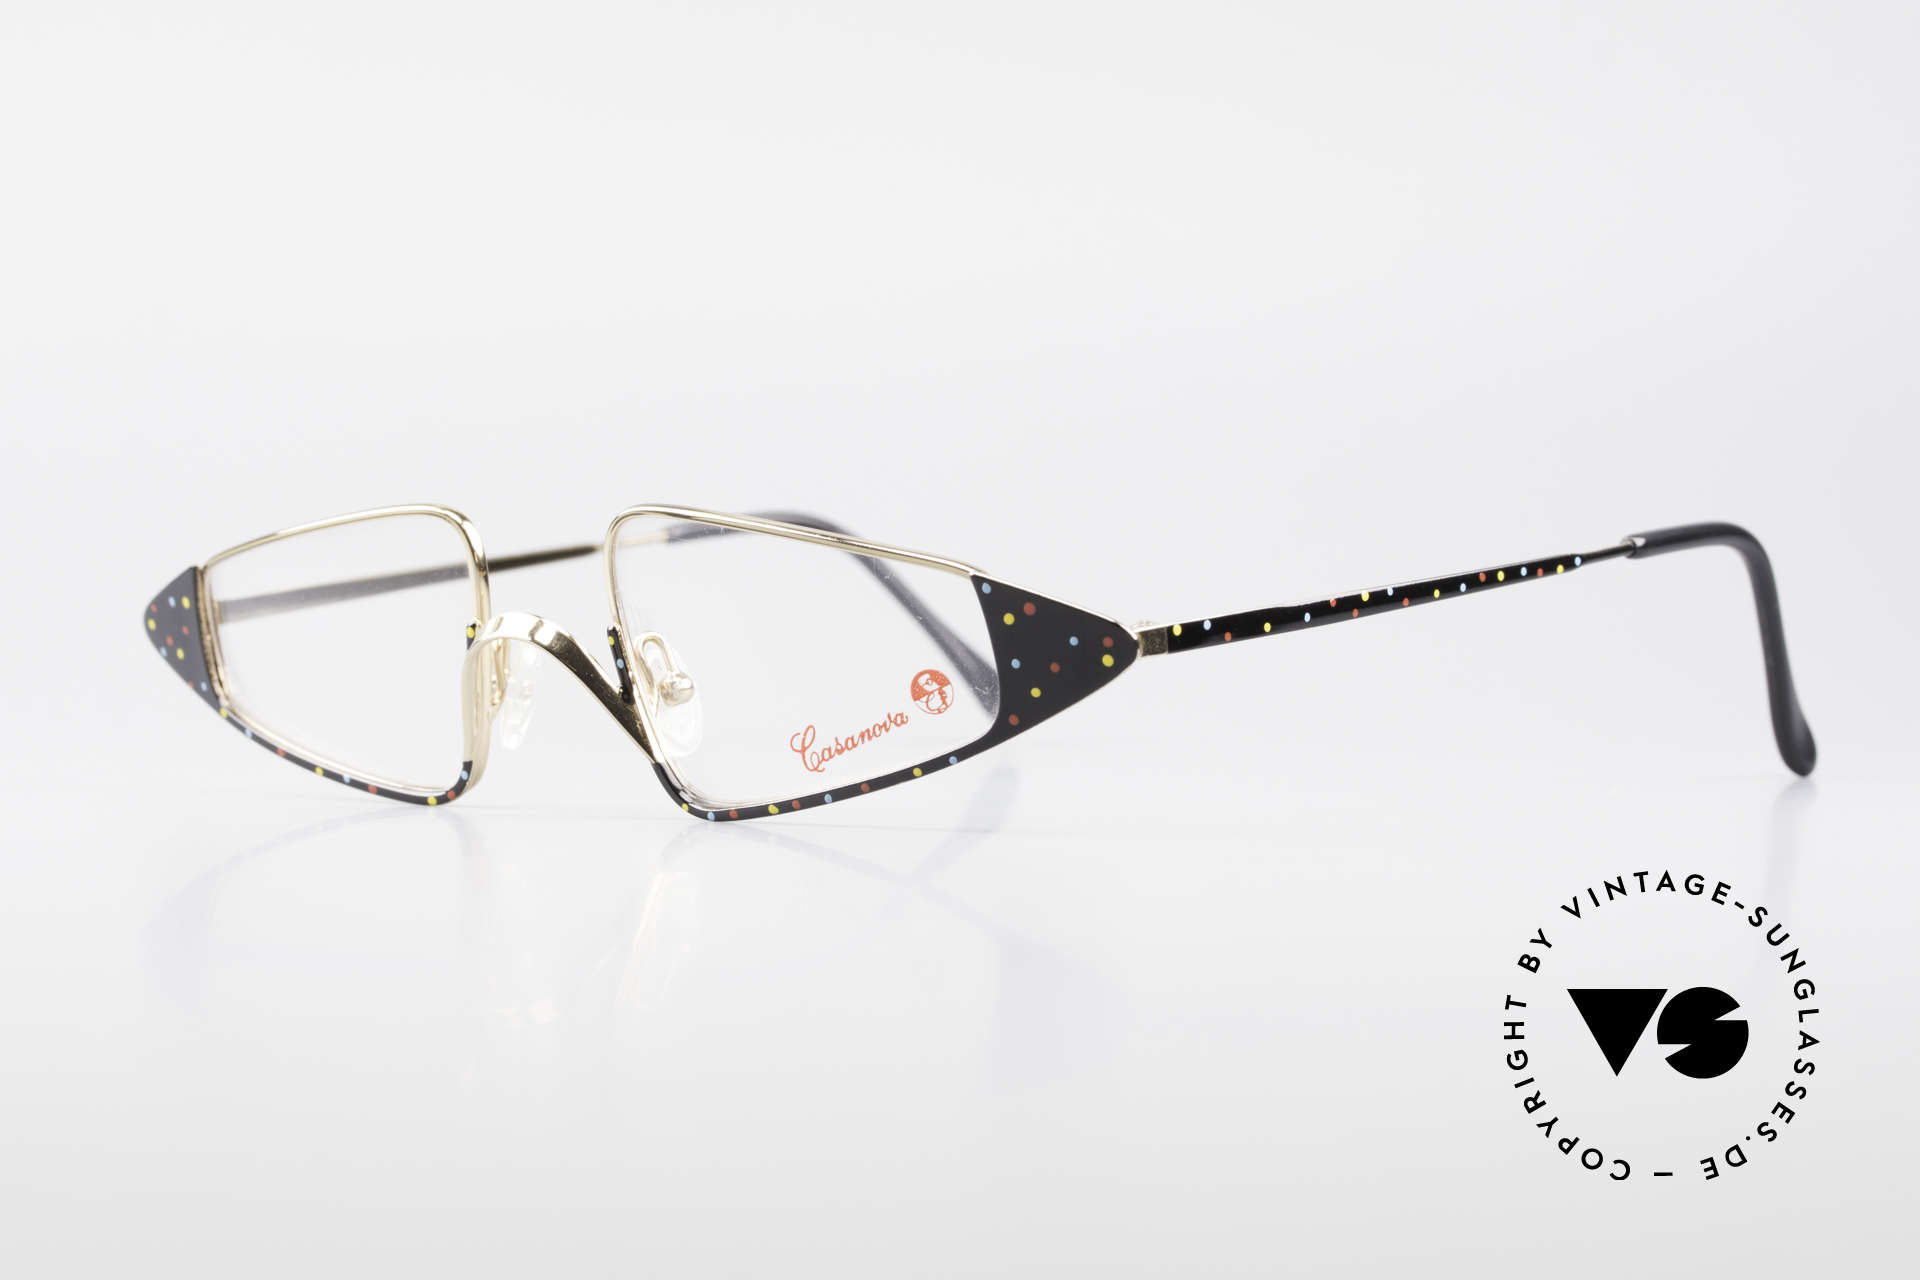 Casanova FC15 Fancy Vintage Reading Frame, at the time of the Italian writer Giacomo G. Casanova, Made for Women